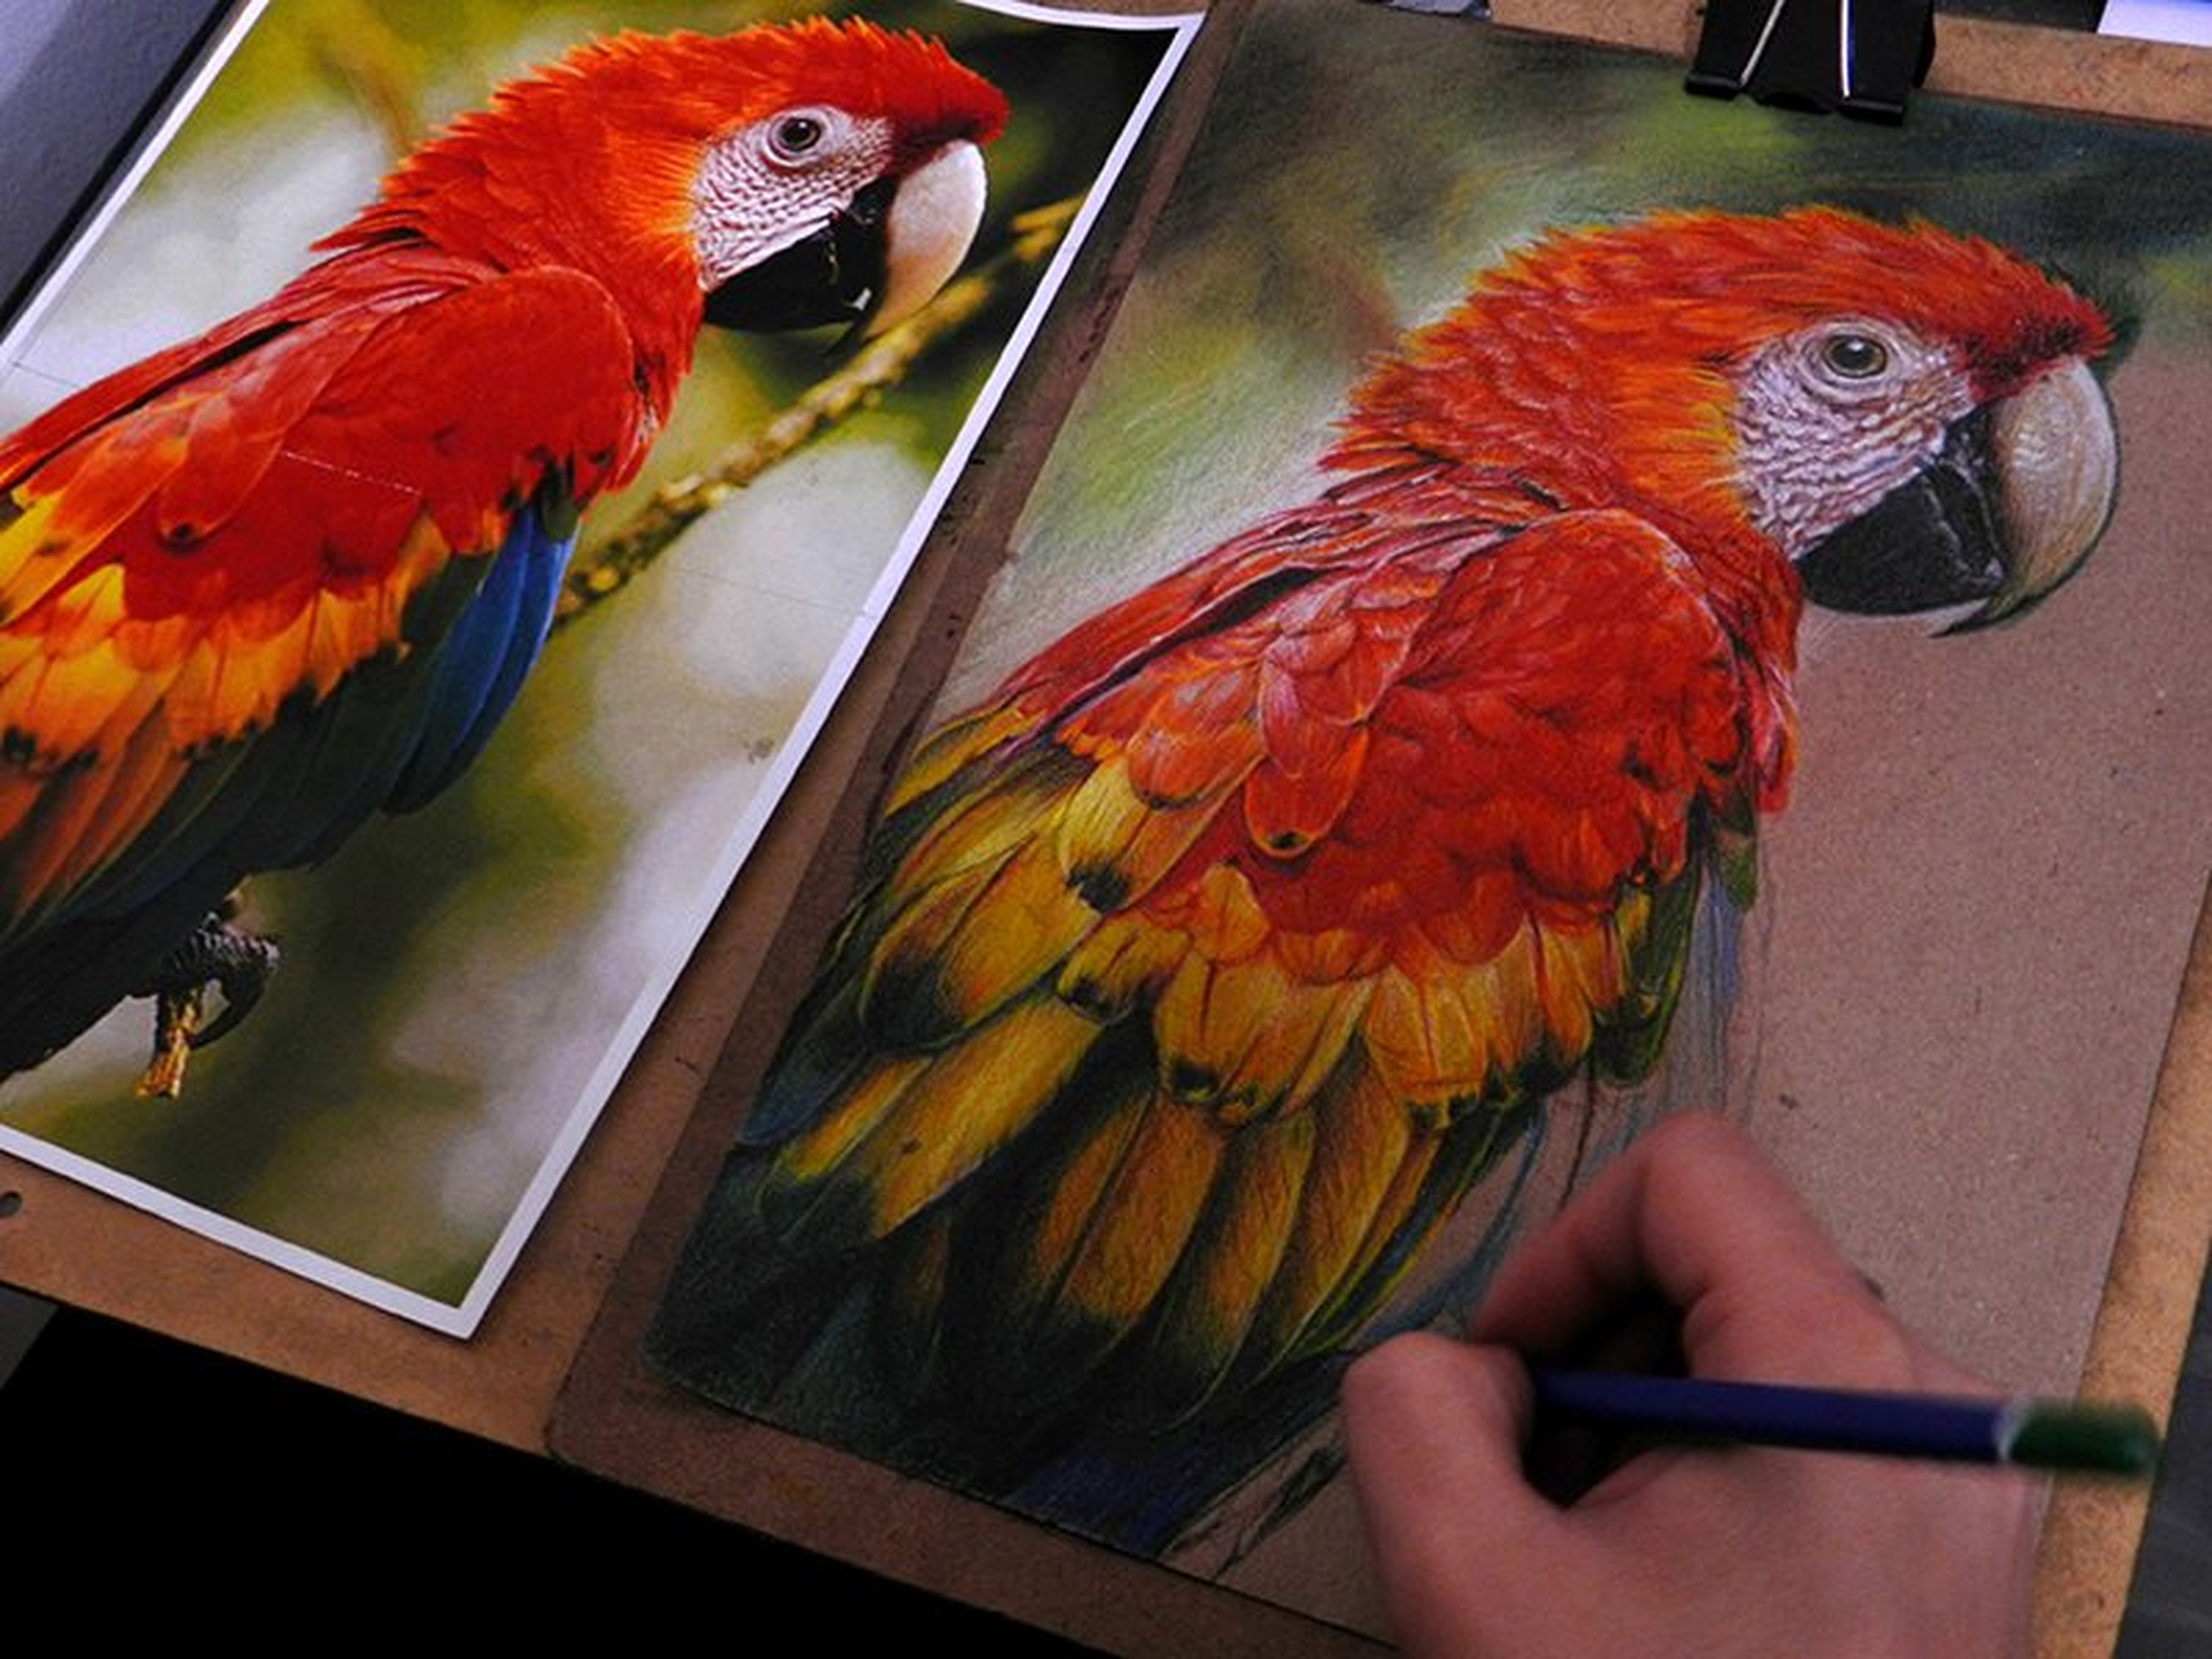 bird, animal themes, parrot, indoors, multi colored, animals in the wild, one animal, wildlife, perching, fish, orange color, beak, close-up, animals in captivity, macaw, animal representation, pigeon, birdcage, art and craft, side view